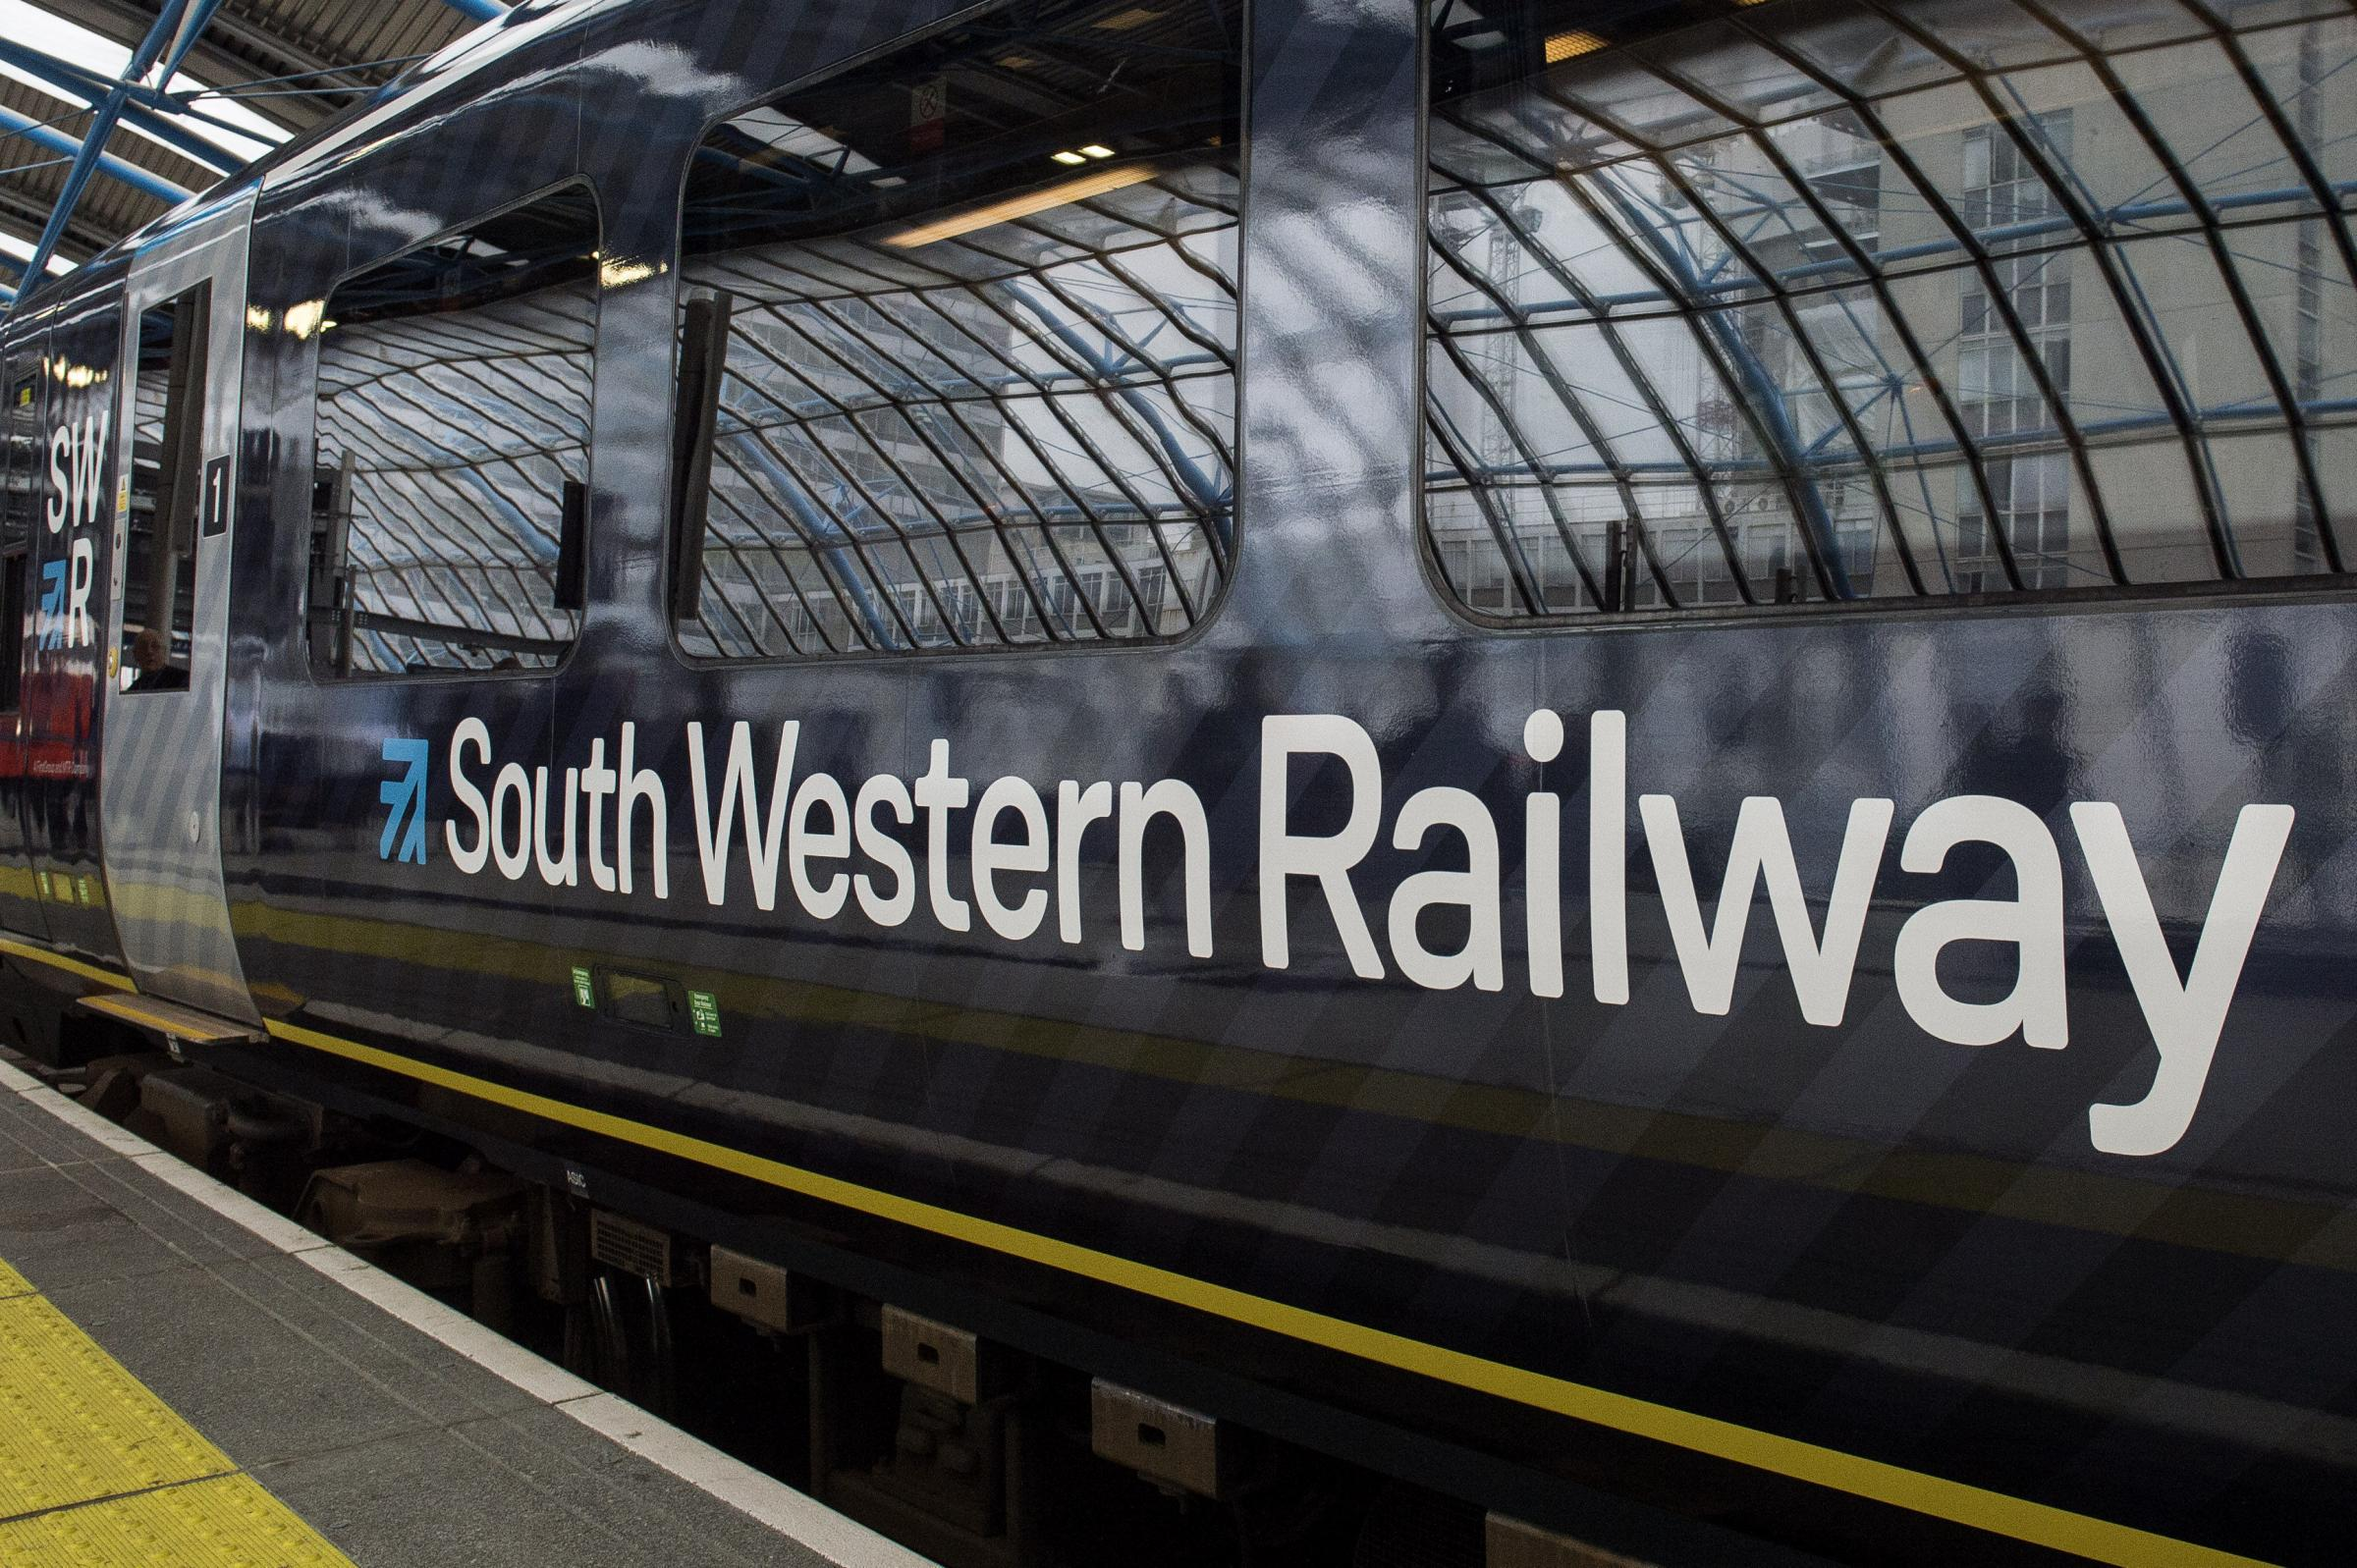 Weymouth to Waterloo line disrupted by signalling fault